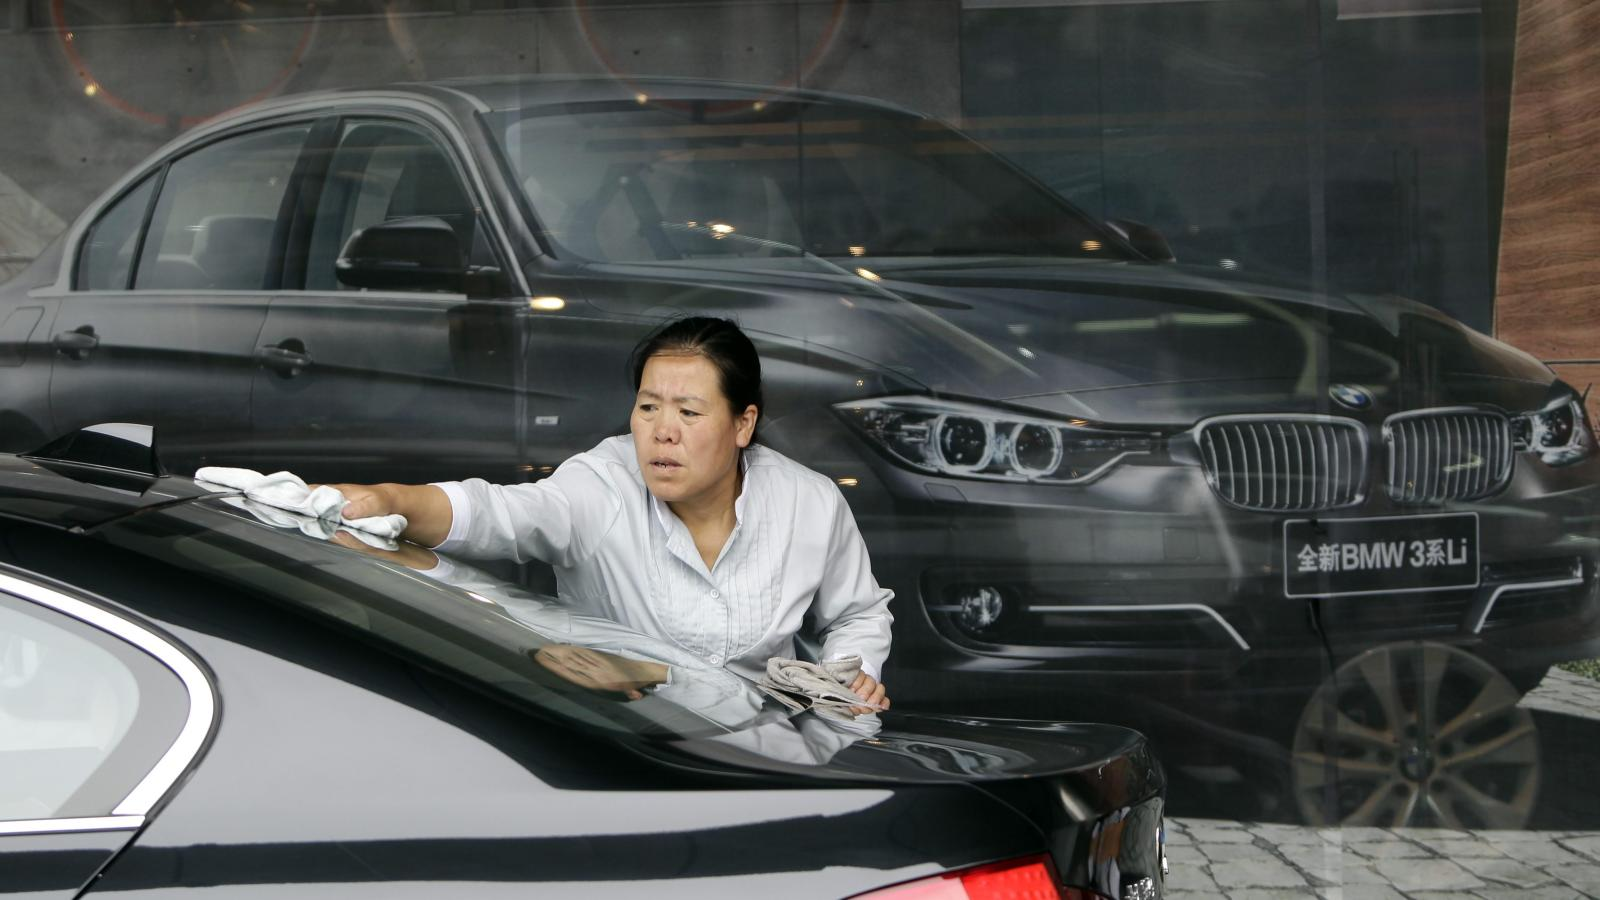 Is A Bmw A Foreign Car >> China S Nicknames For Foreign Cars Like Porsche And Bmw